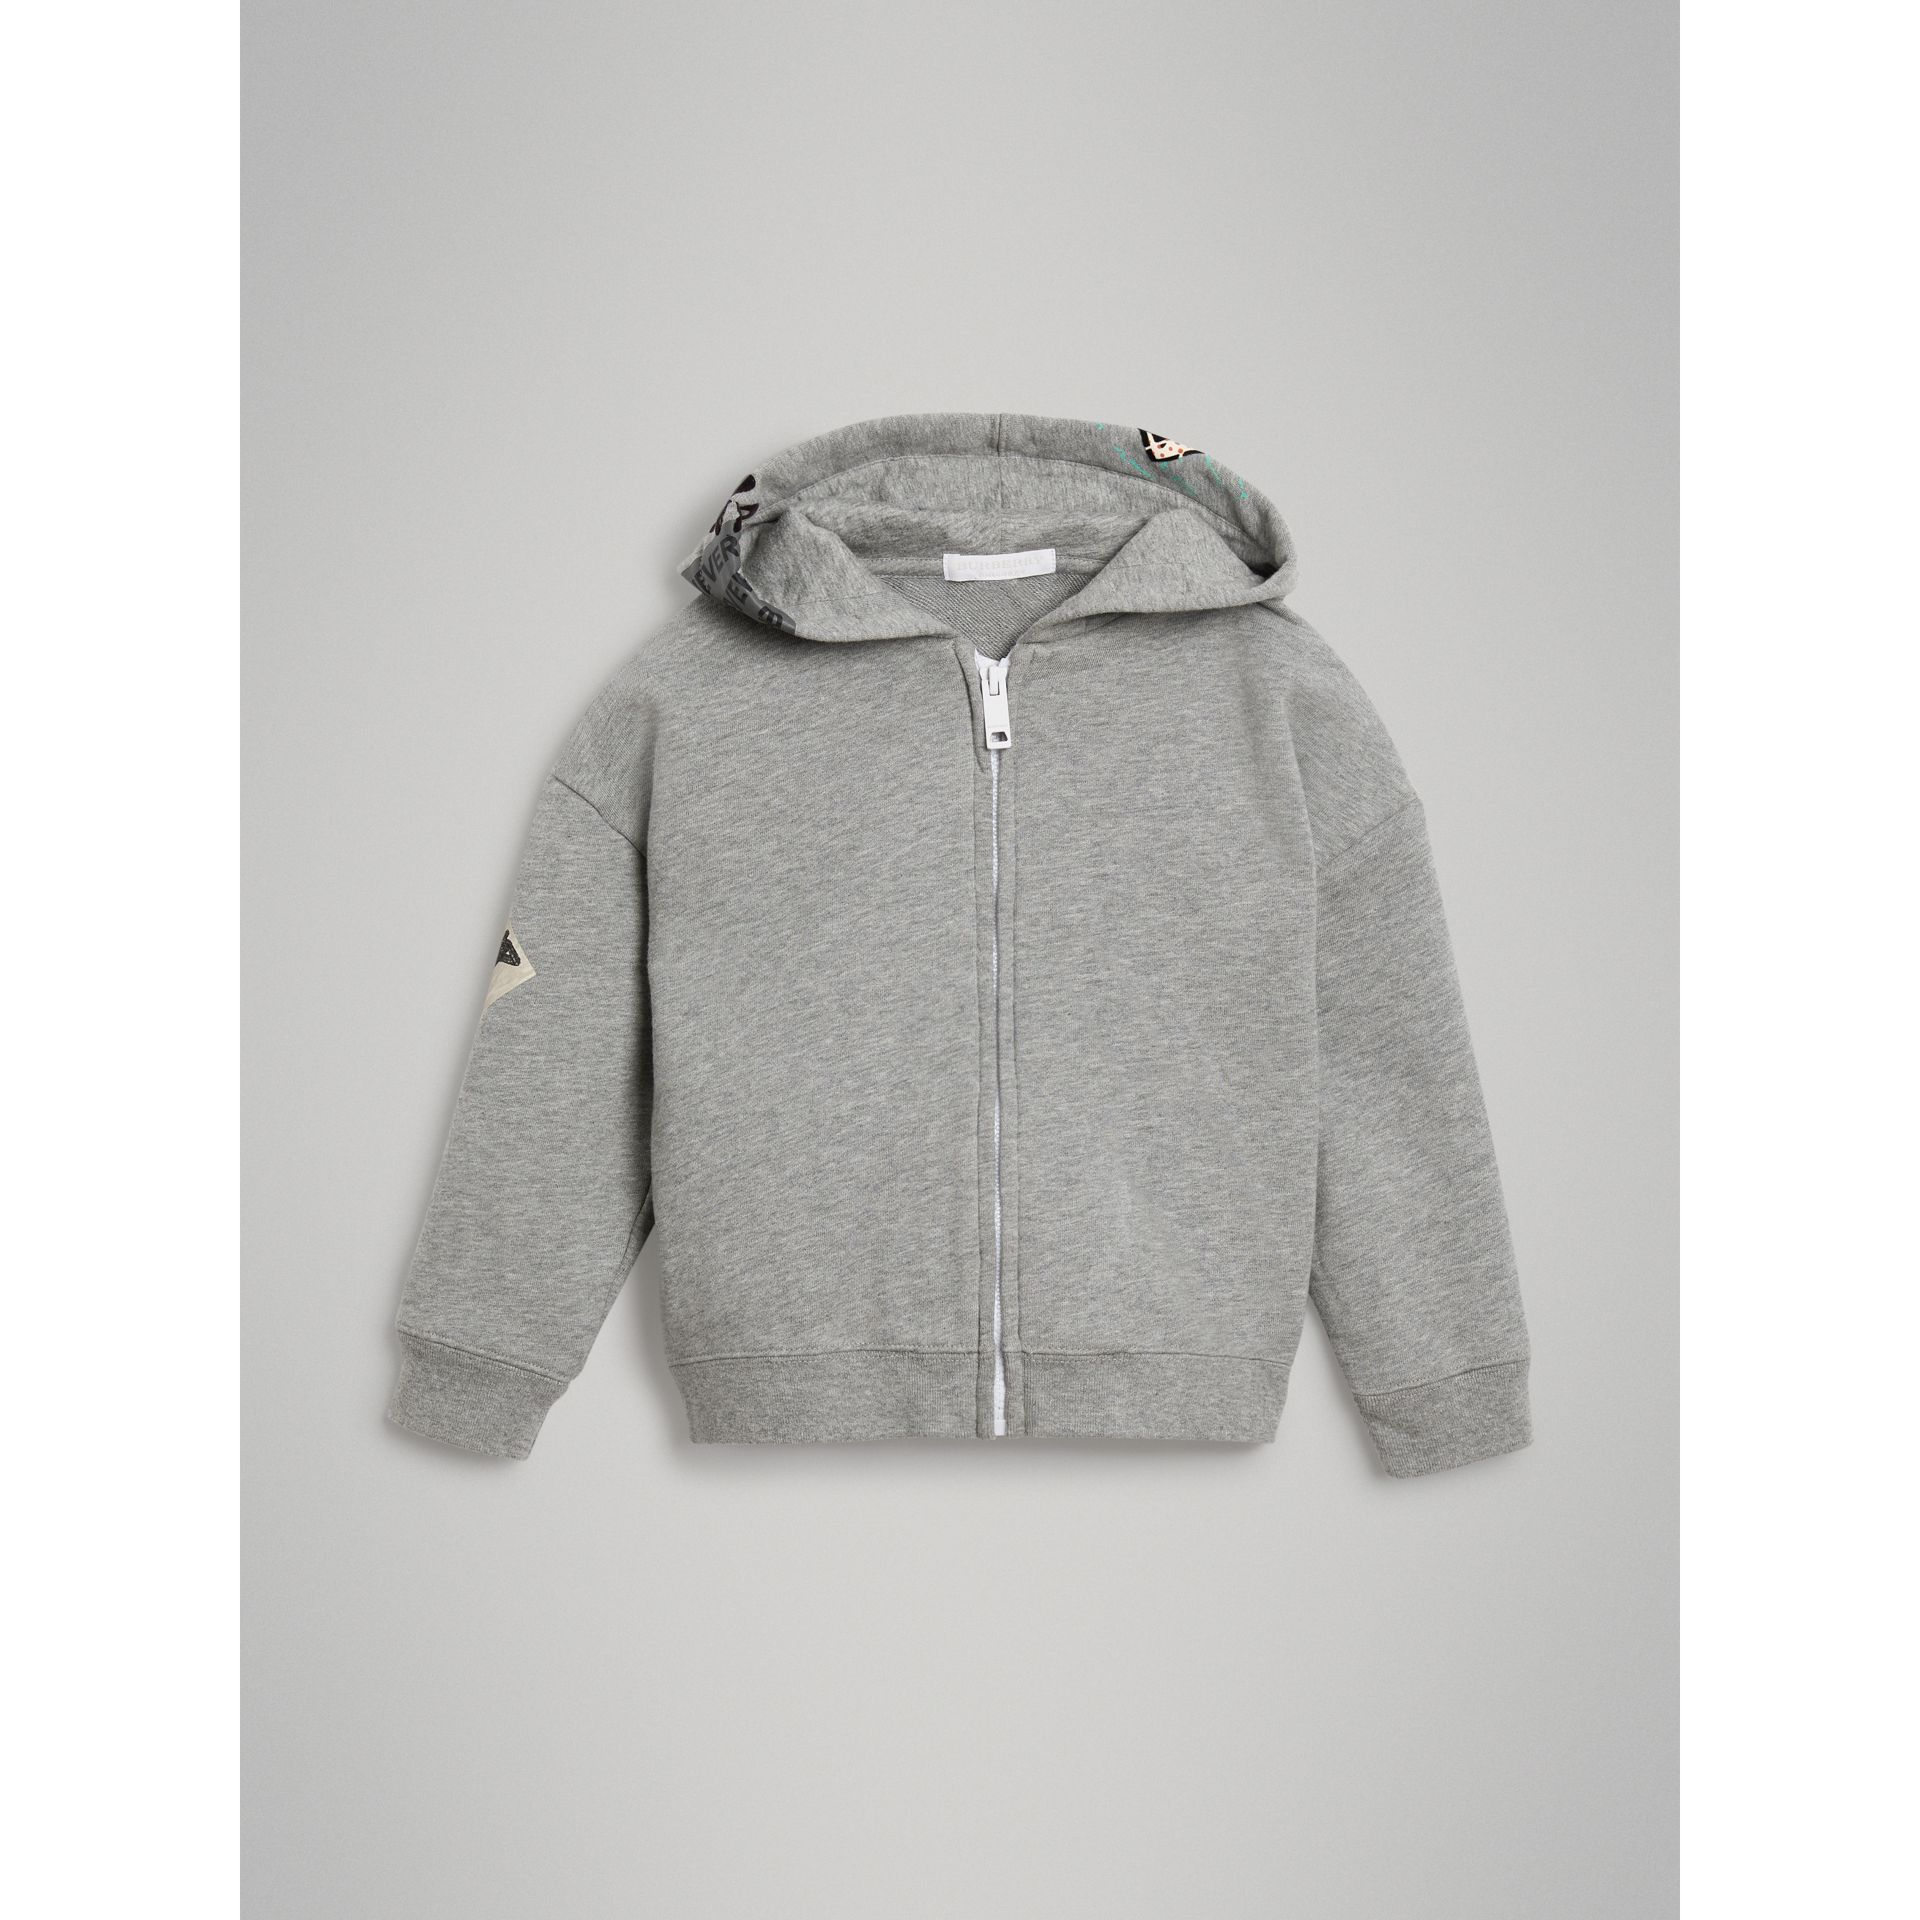 London Street Art Print Cotton Hooded Top in Grey Melange | Burberry - gallery image 0